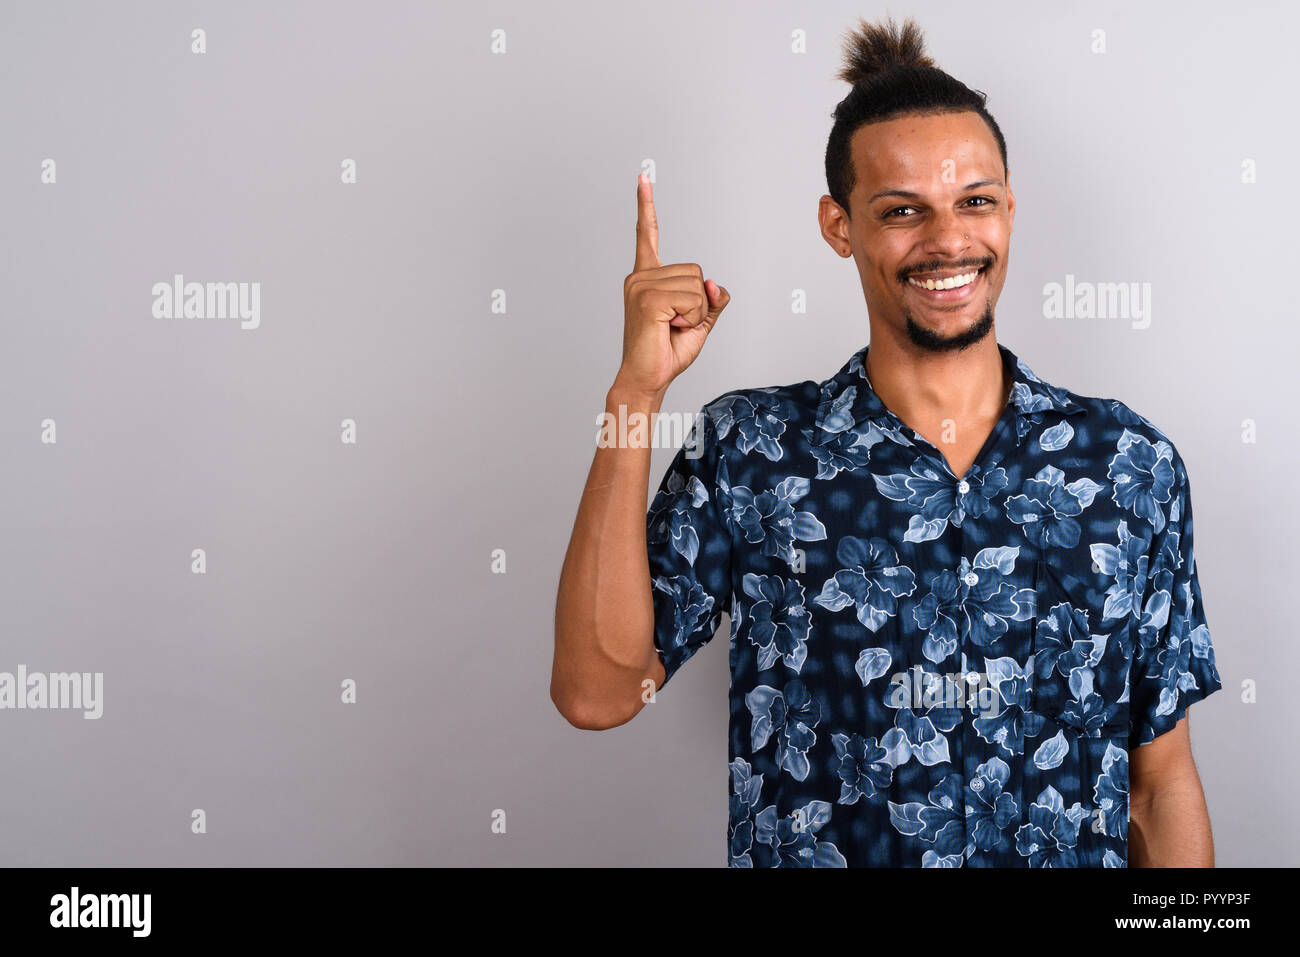 Young bearded handsome African man against gray background - Stock Image